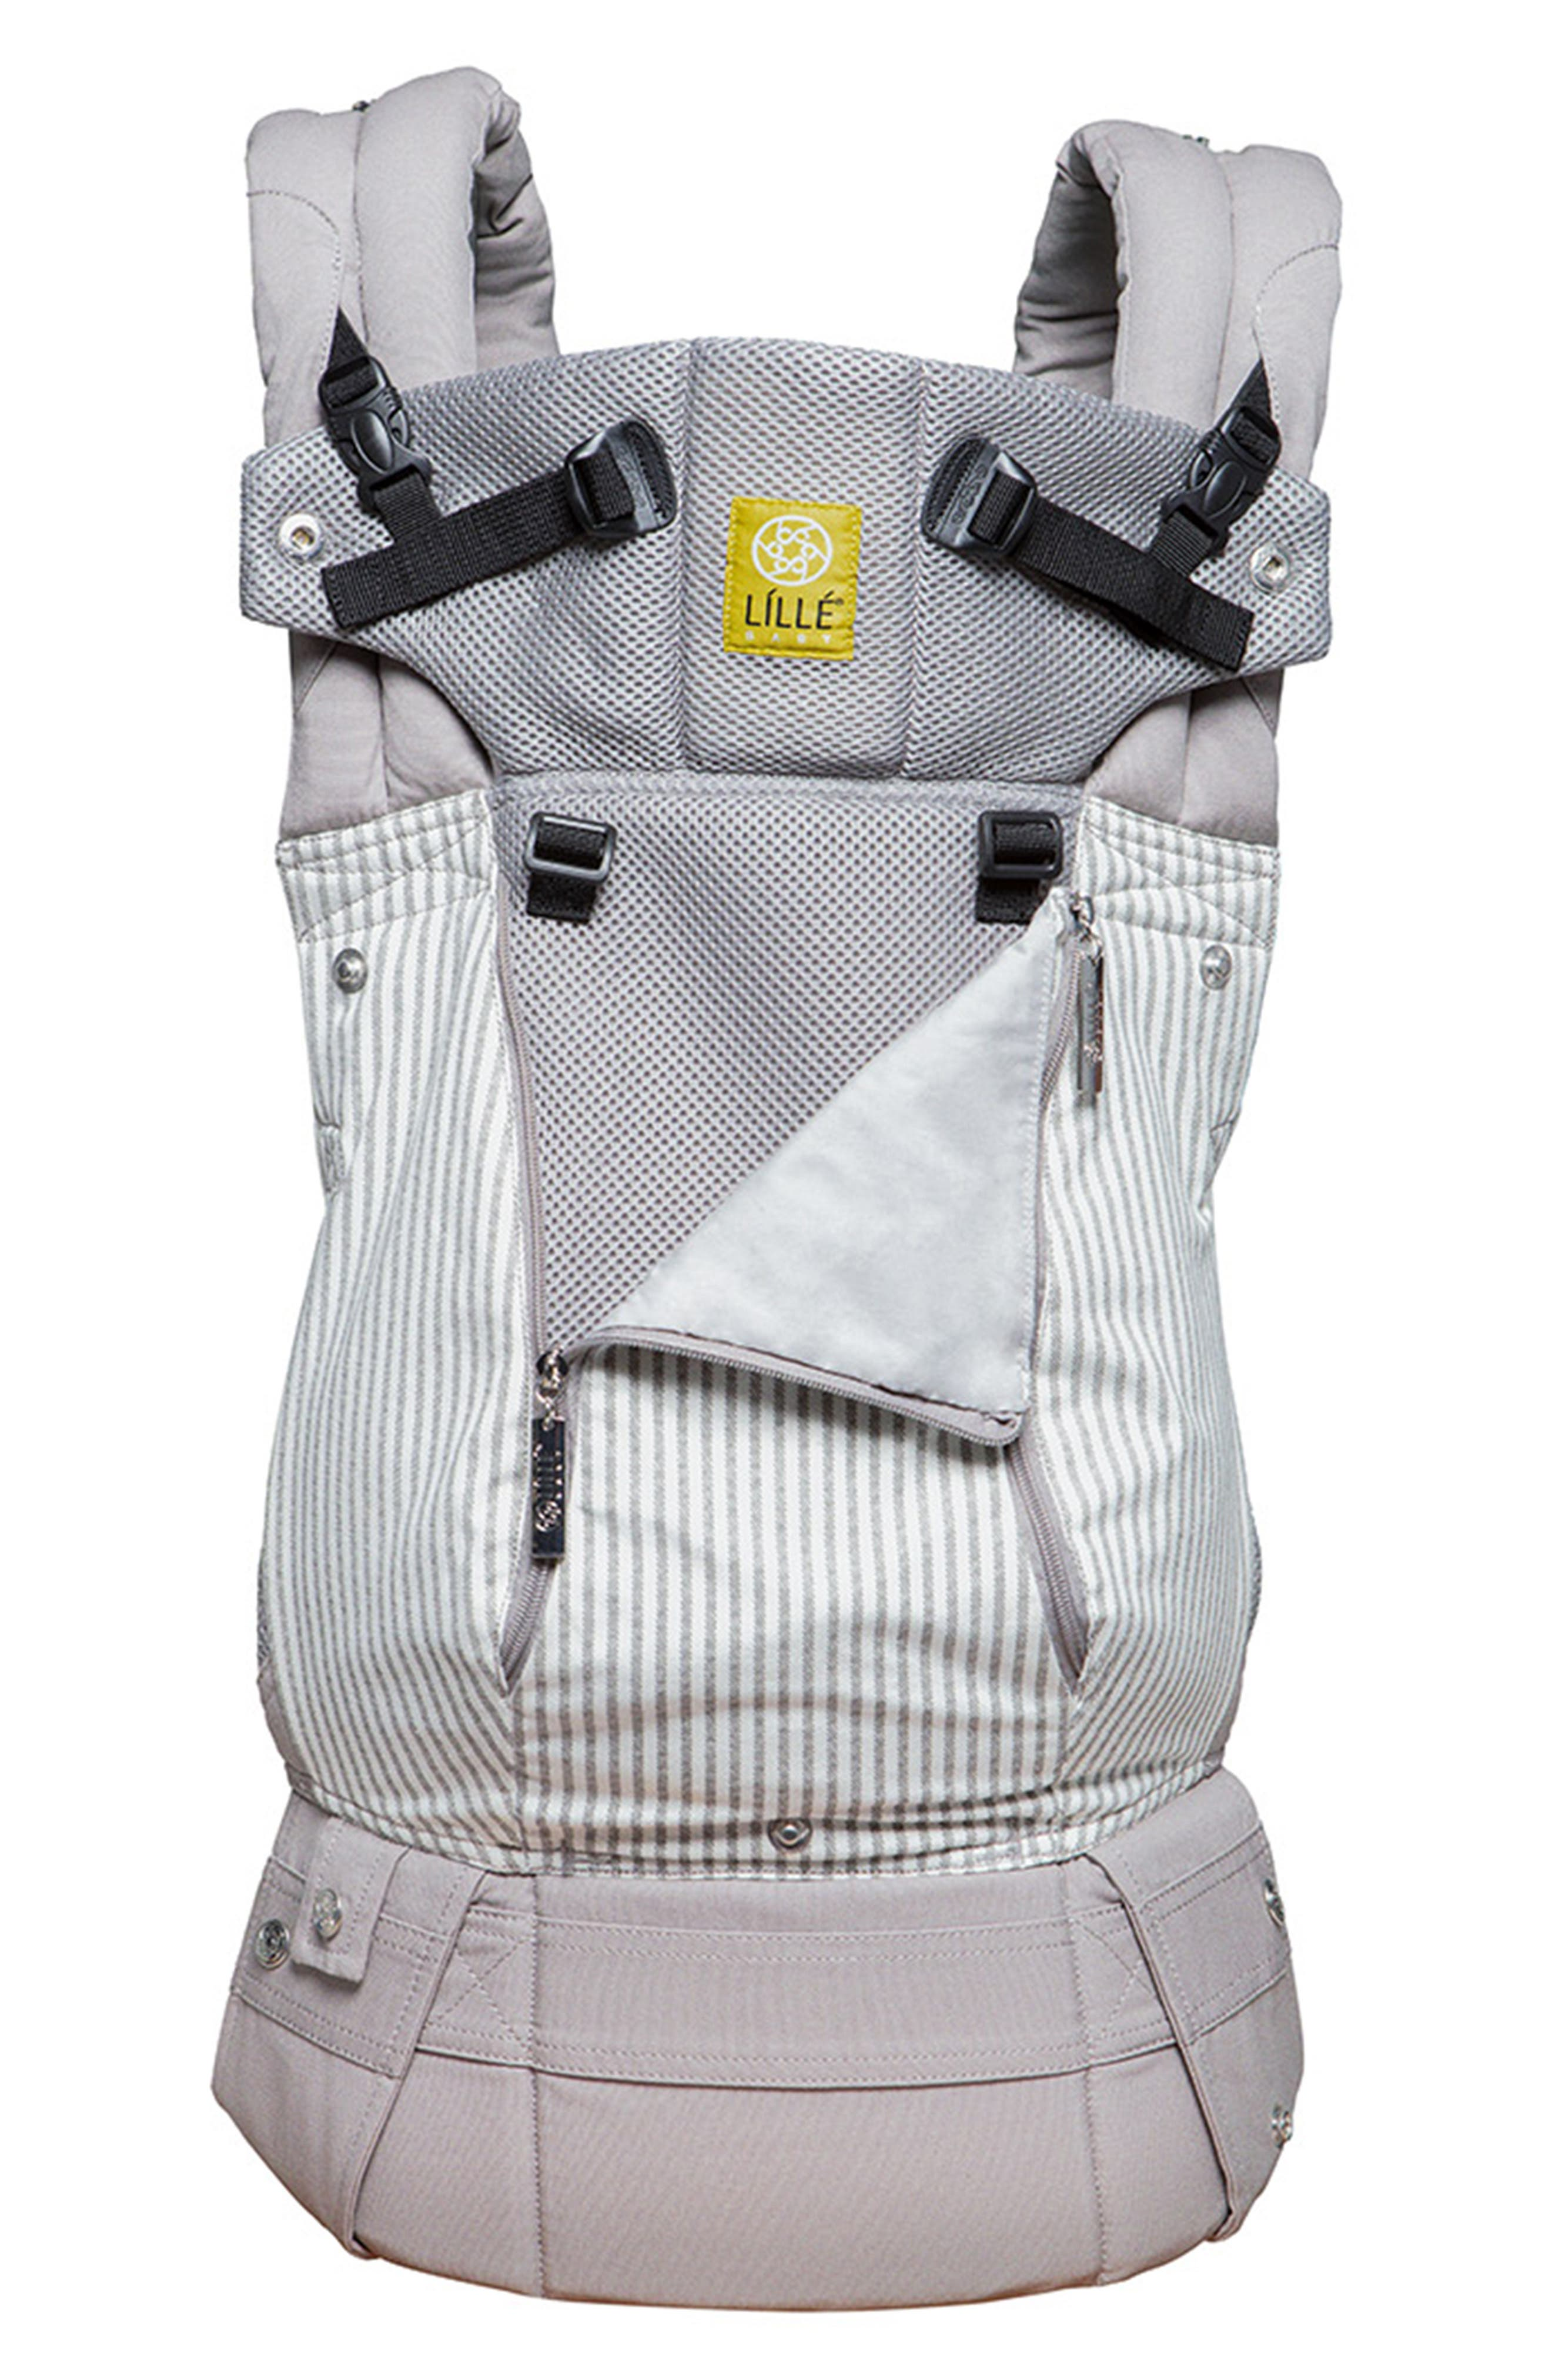 LILLEBABY,                             All Seasons - Silver Lining Baby Carrier,                             Main thumbnail 1, color,                             SILVER LINING